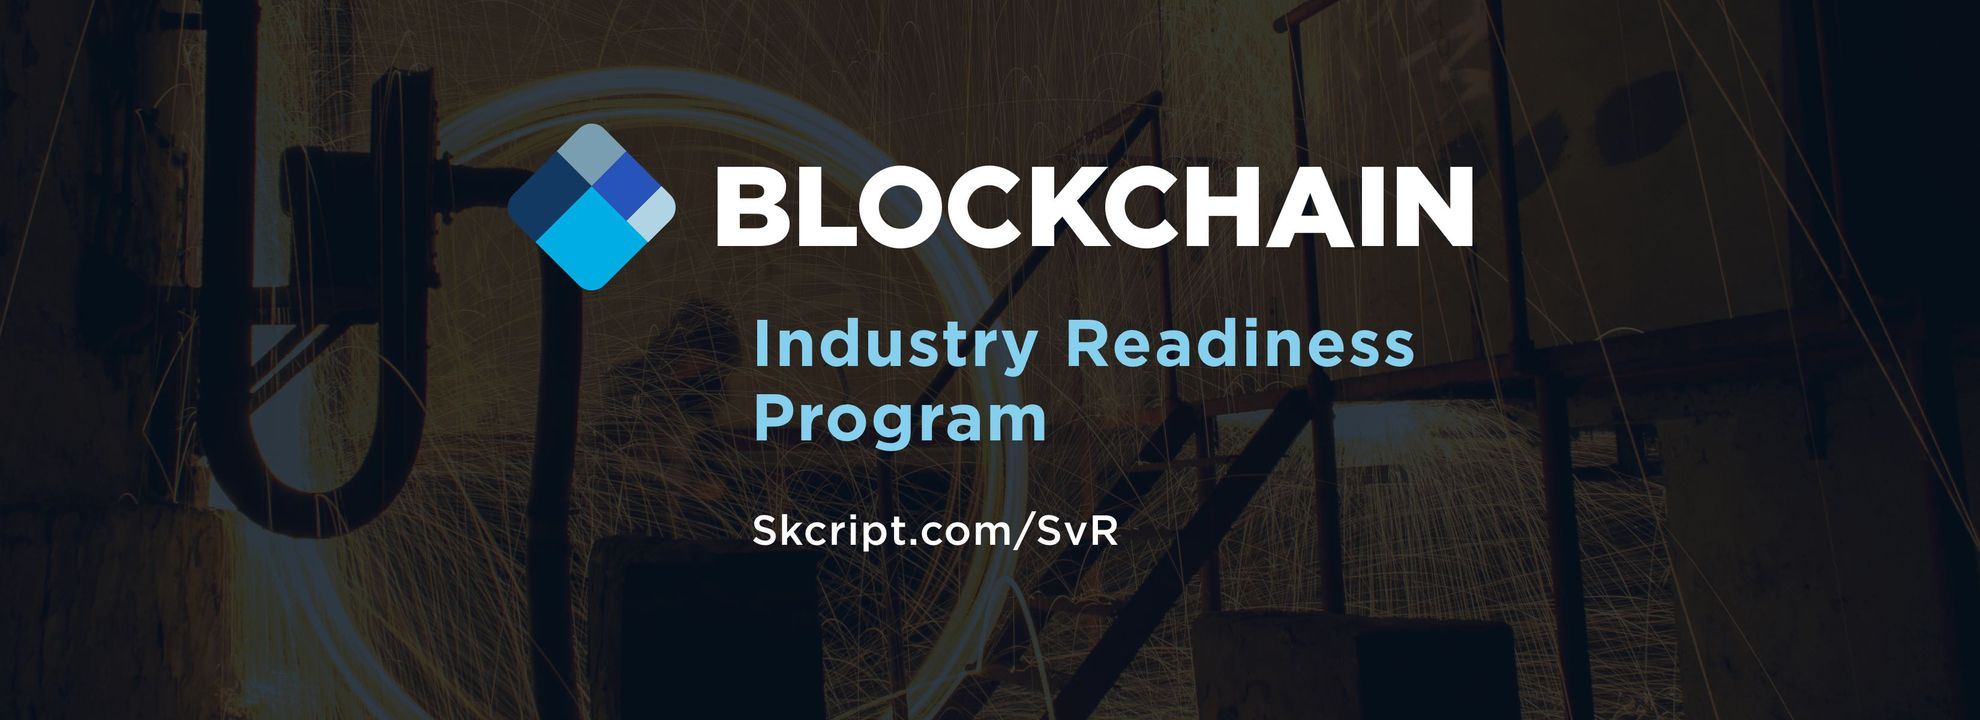 Introducing Blockchain Industry Readiness Programs (IRP)